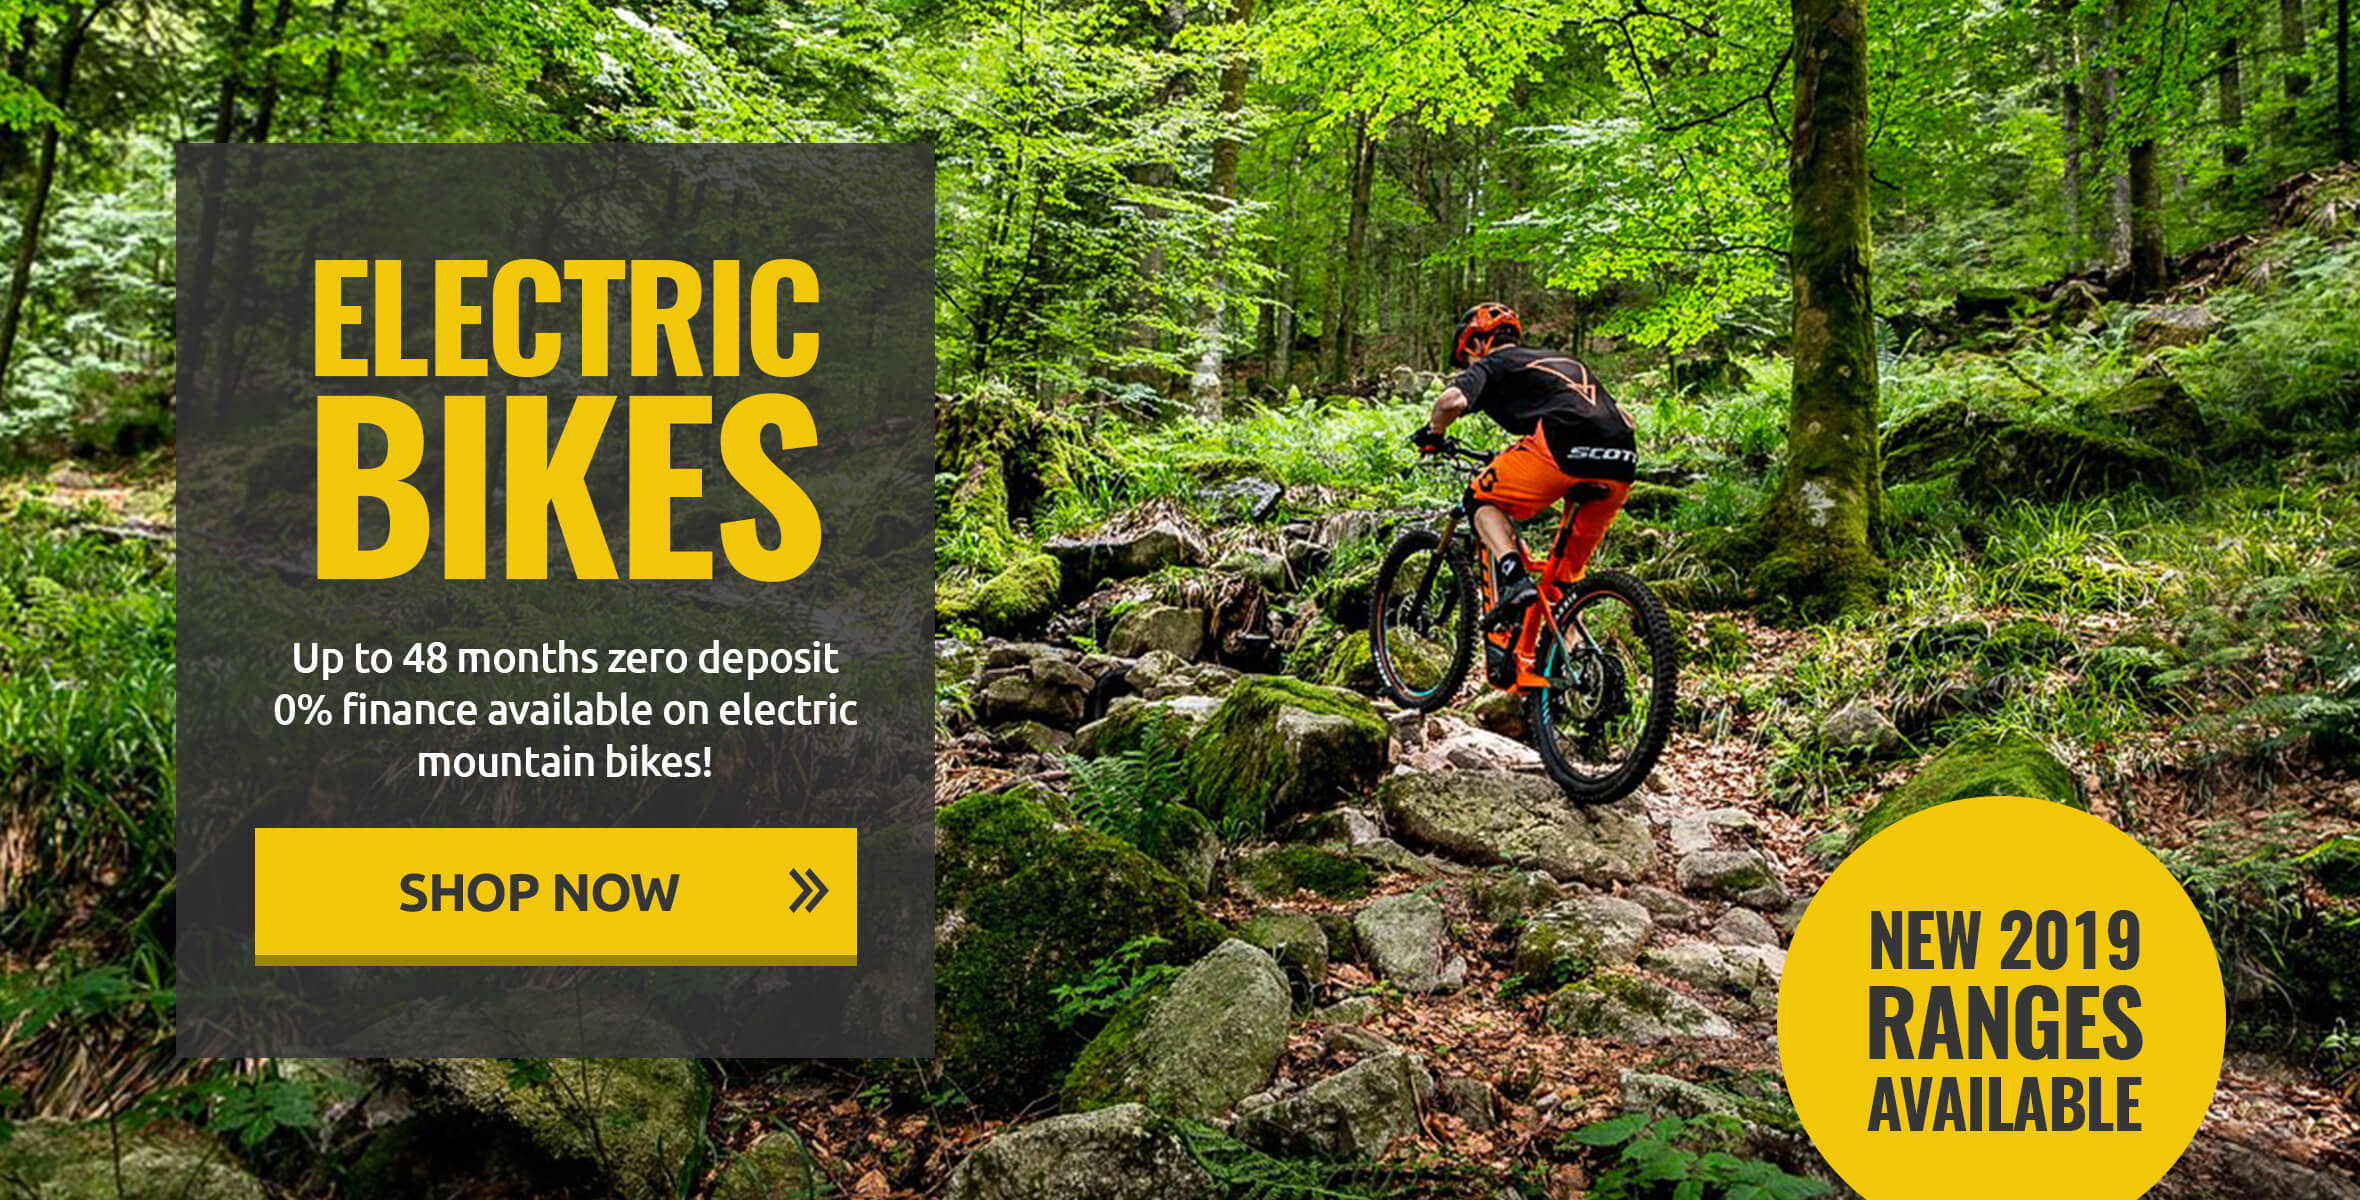 Up to 48 Months Zero Deposit 0% Finance Available on Electric Mountain Bikes